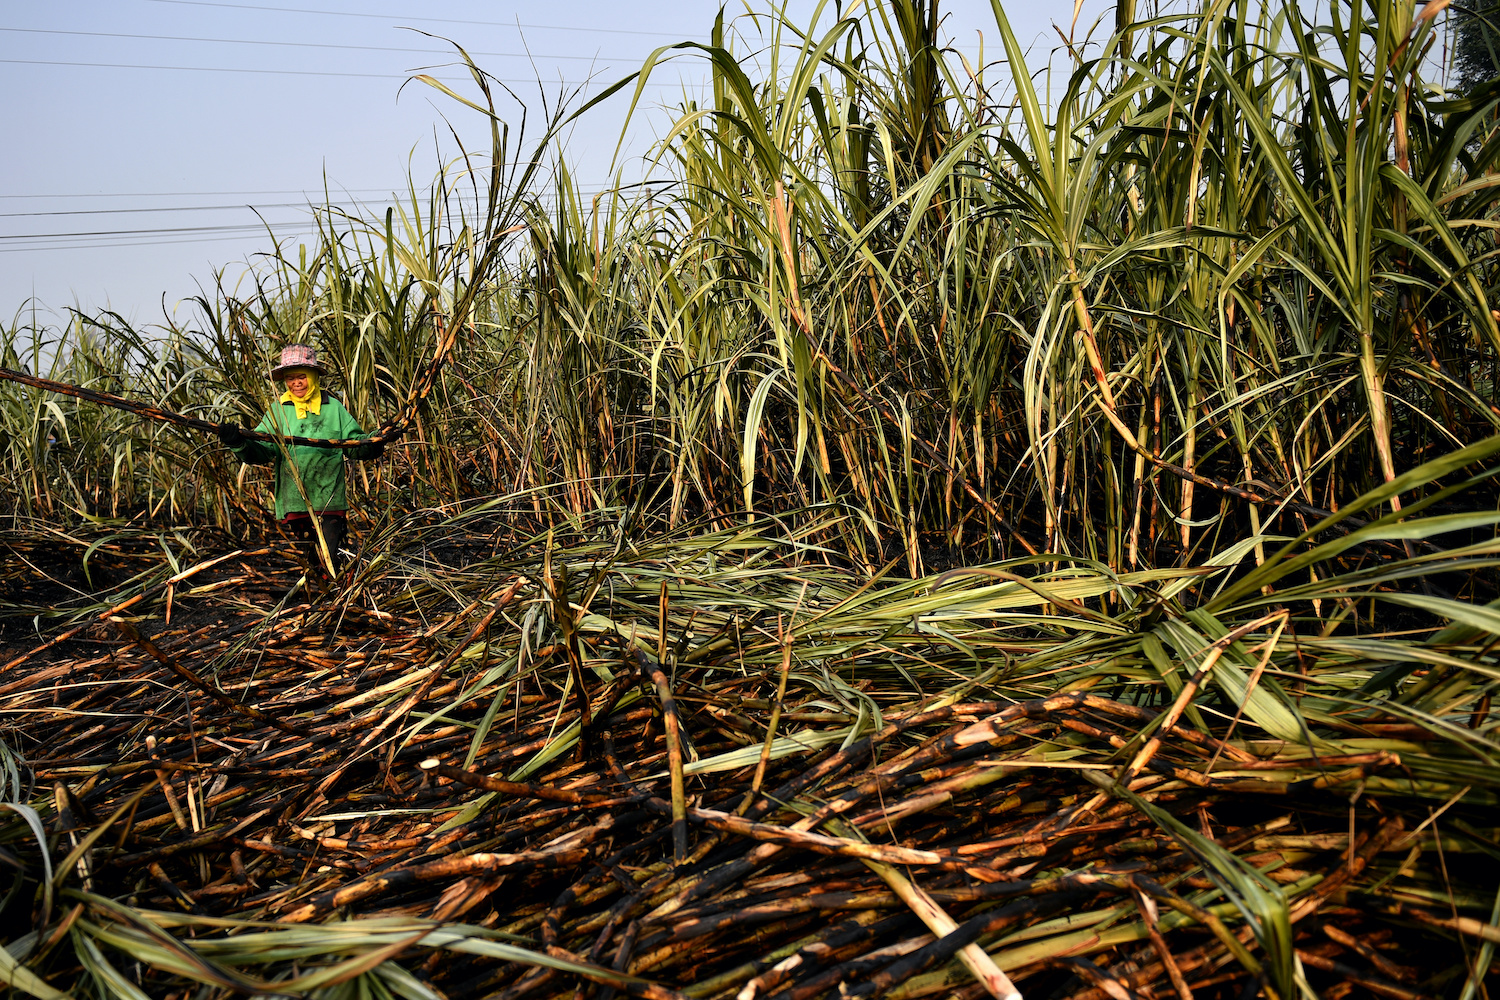 A sugarcane farmer works in a burnt field, a practice that authorities have been attempting to ban in order to reduce pollution, in Suphan Buri. (Reuters Photo)